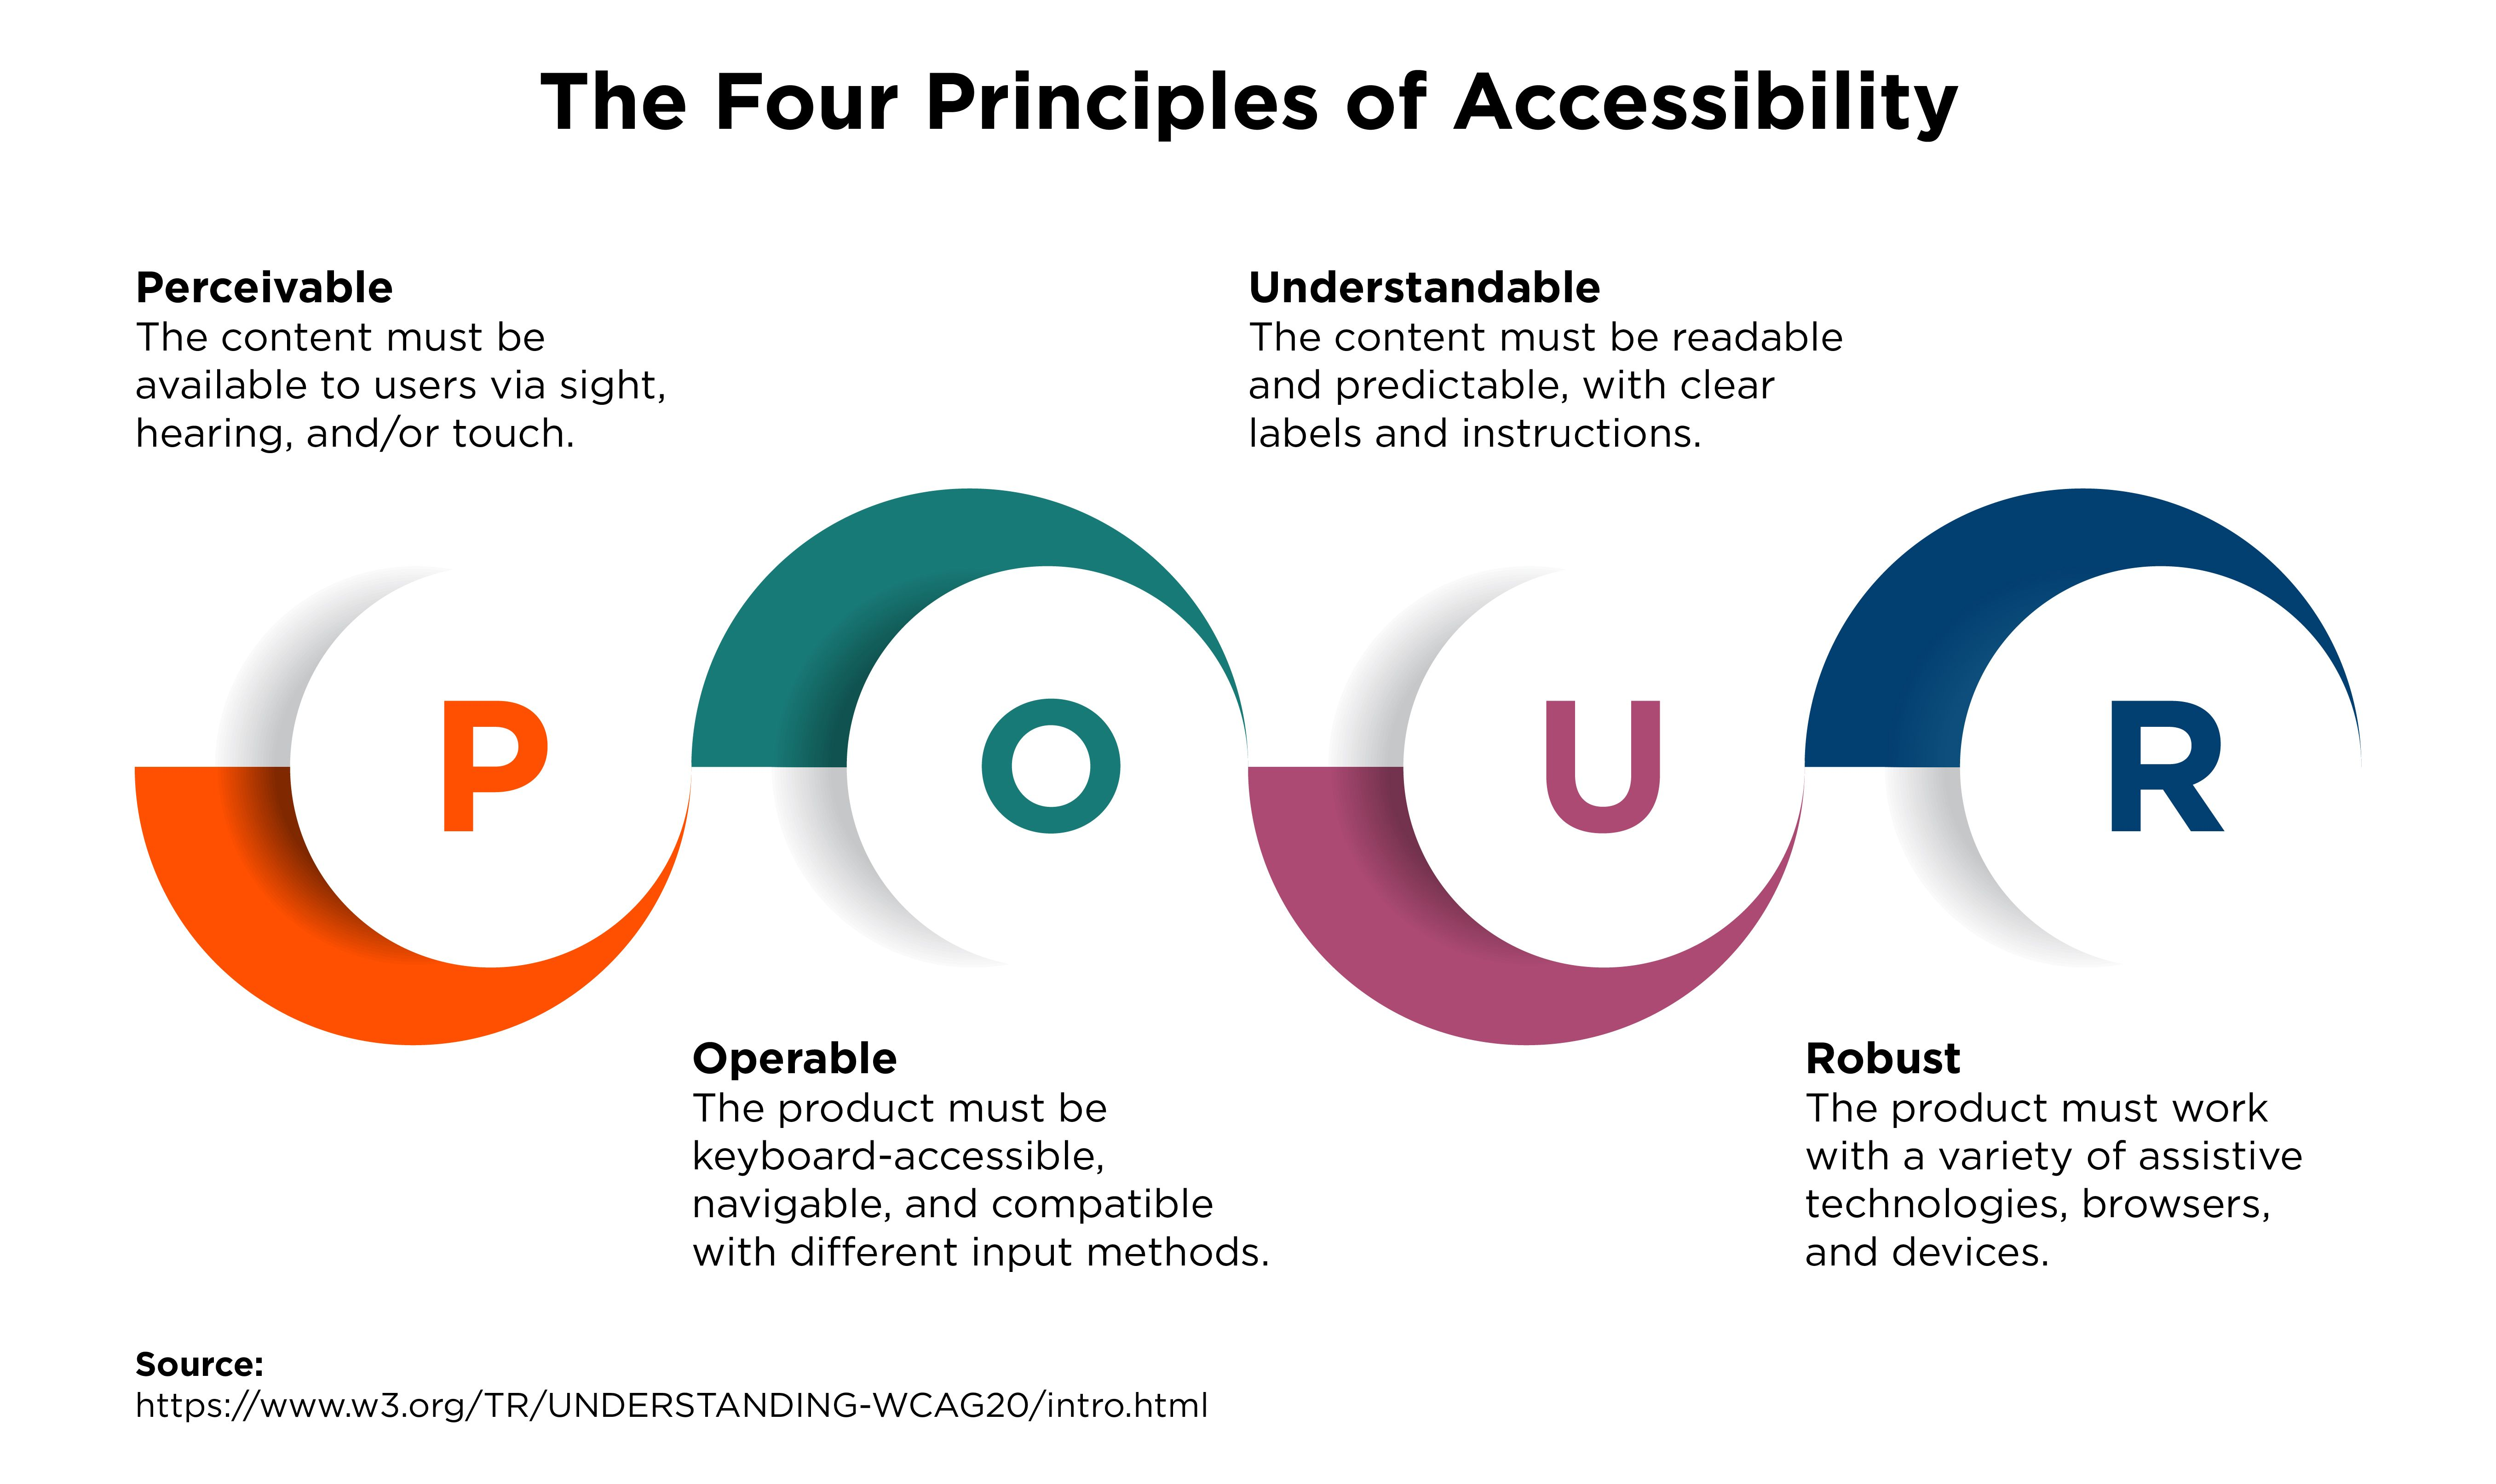 The four principles of accessibility